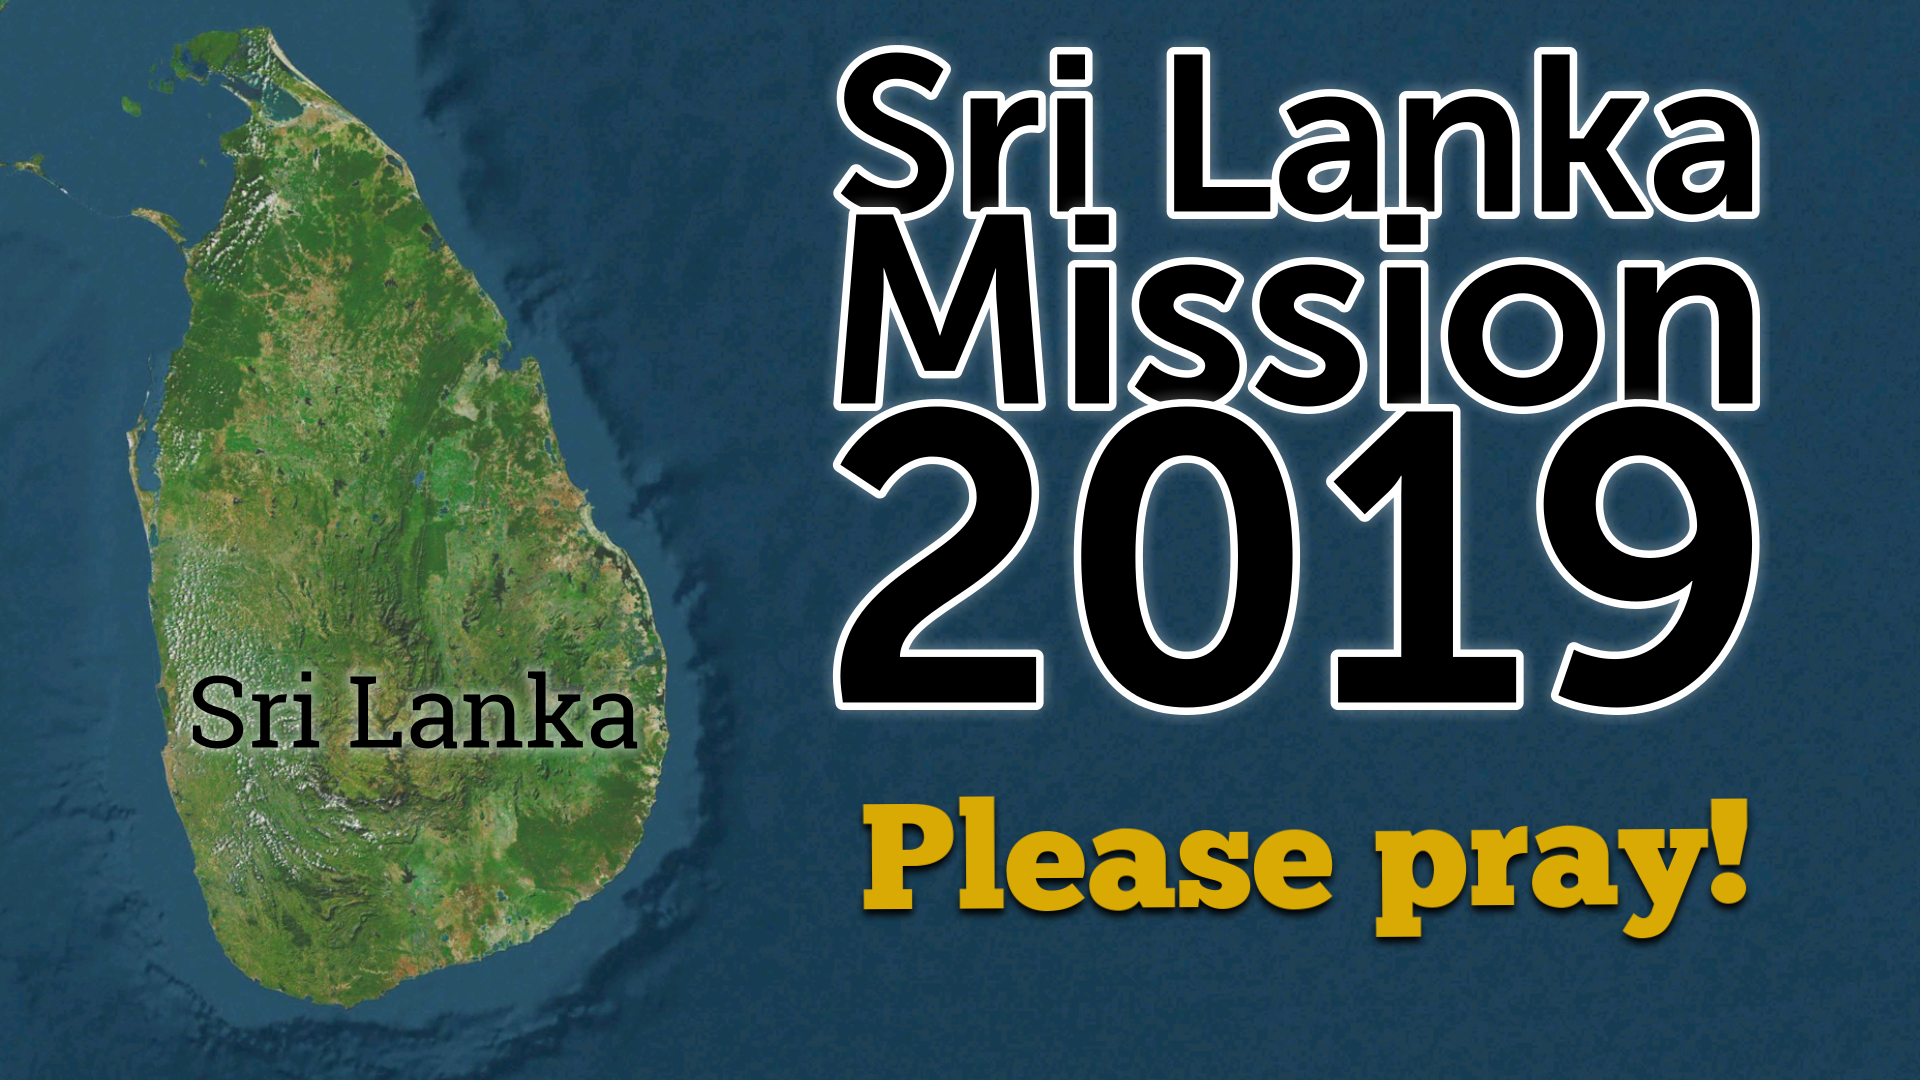 Update #4: Sri Lanka Mission 2019